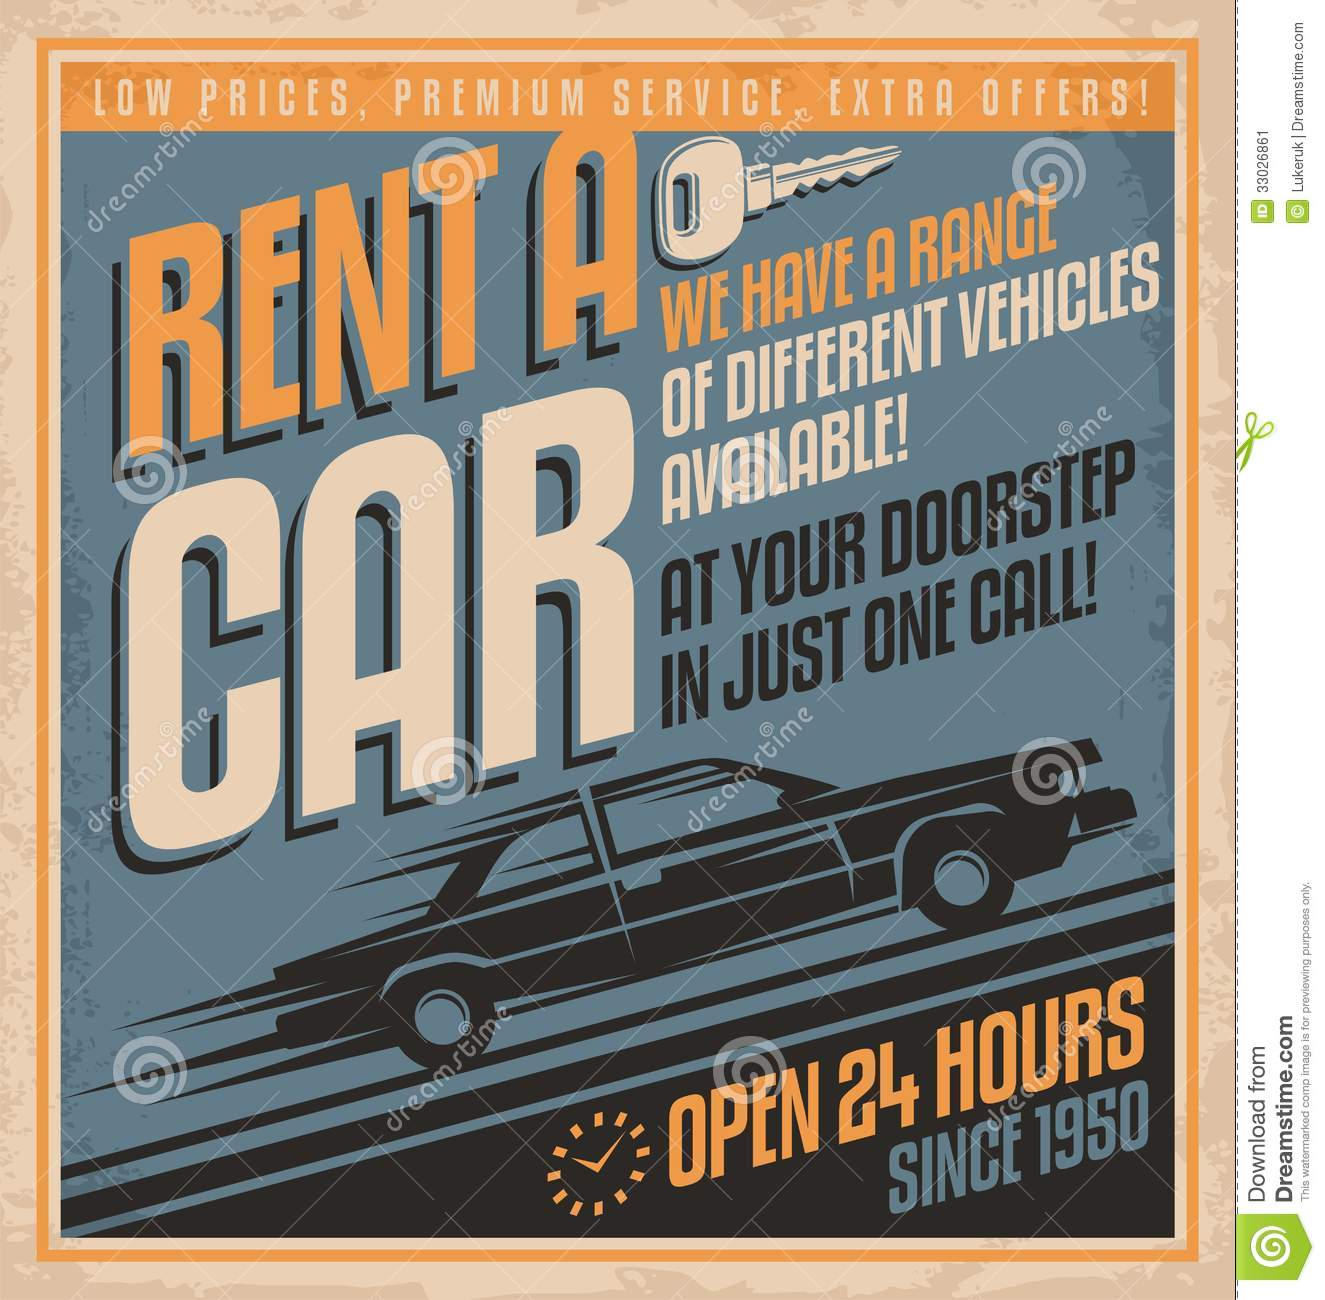 70s poster design template - Car Comics Design Poster Promotional Rent Style Template